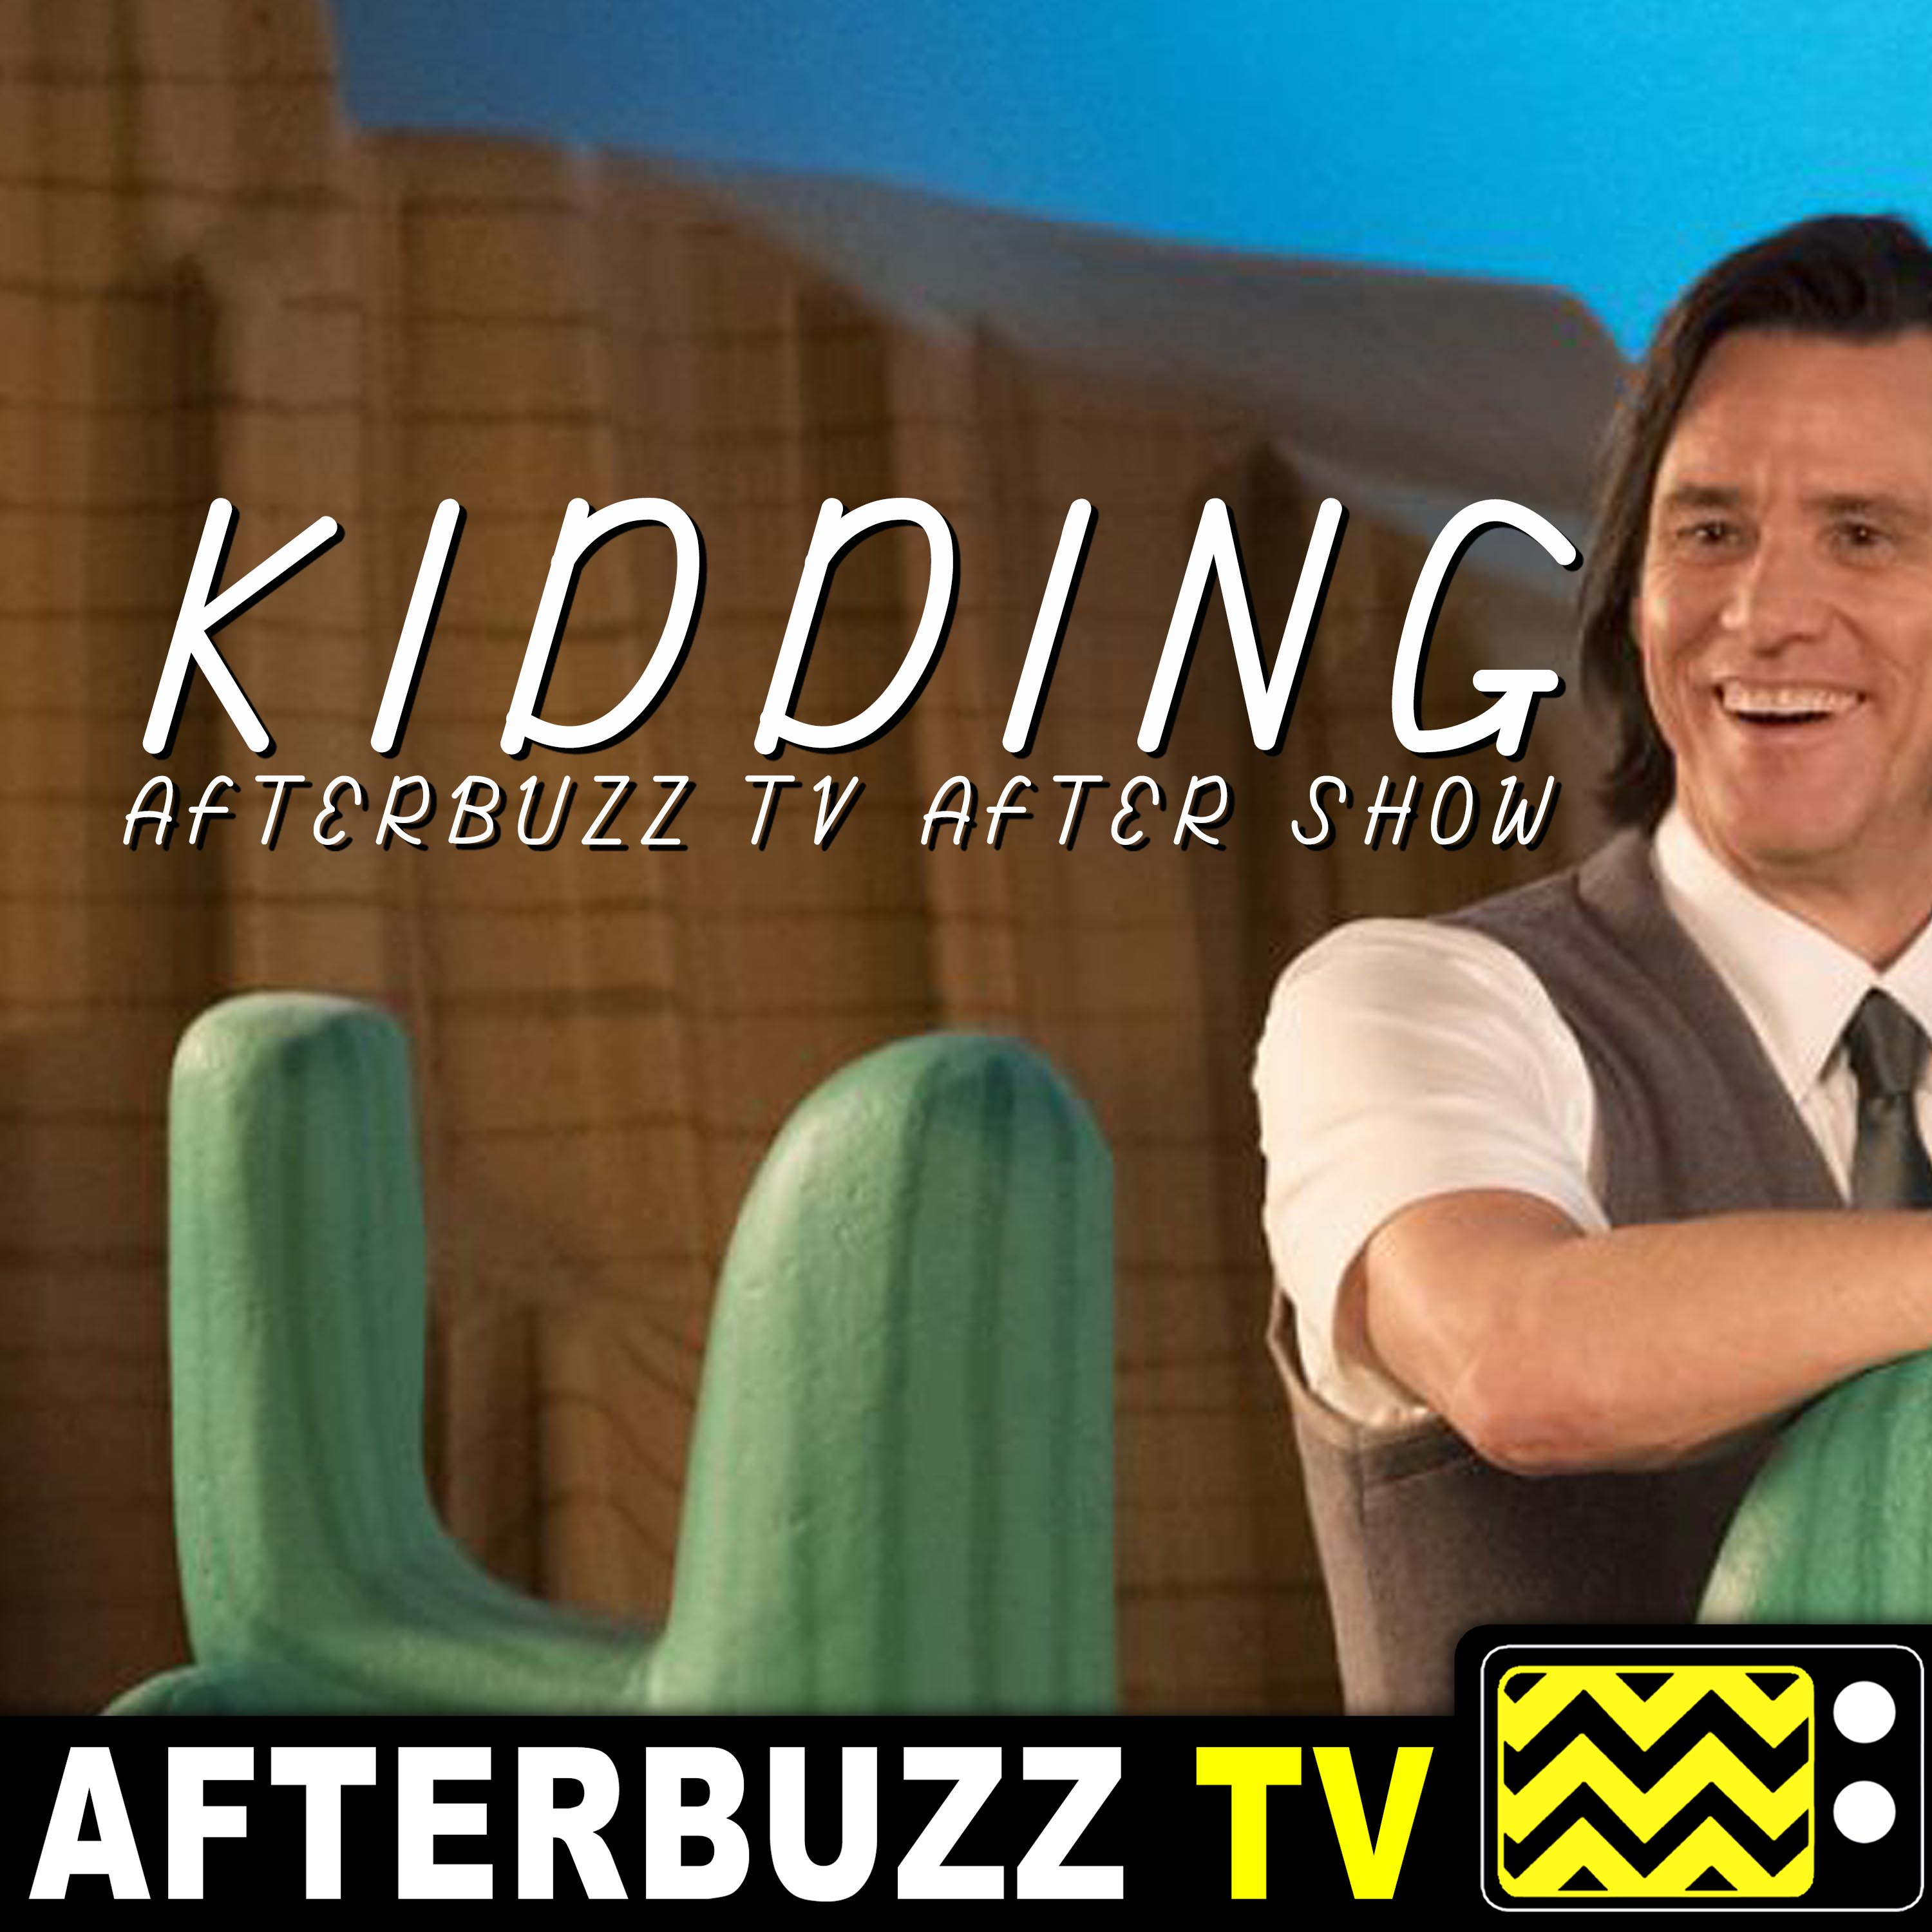 Kidding Reviews and After Show